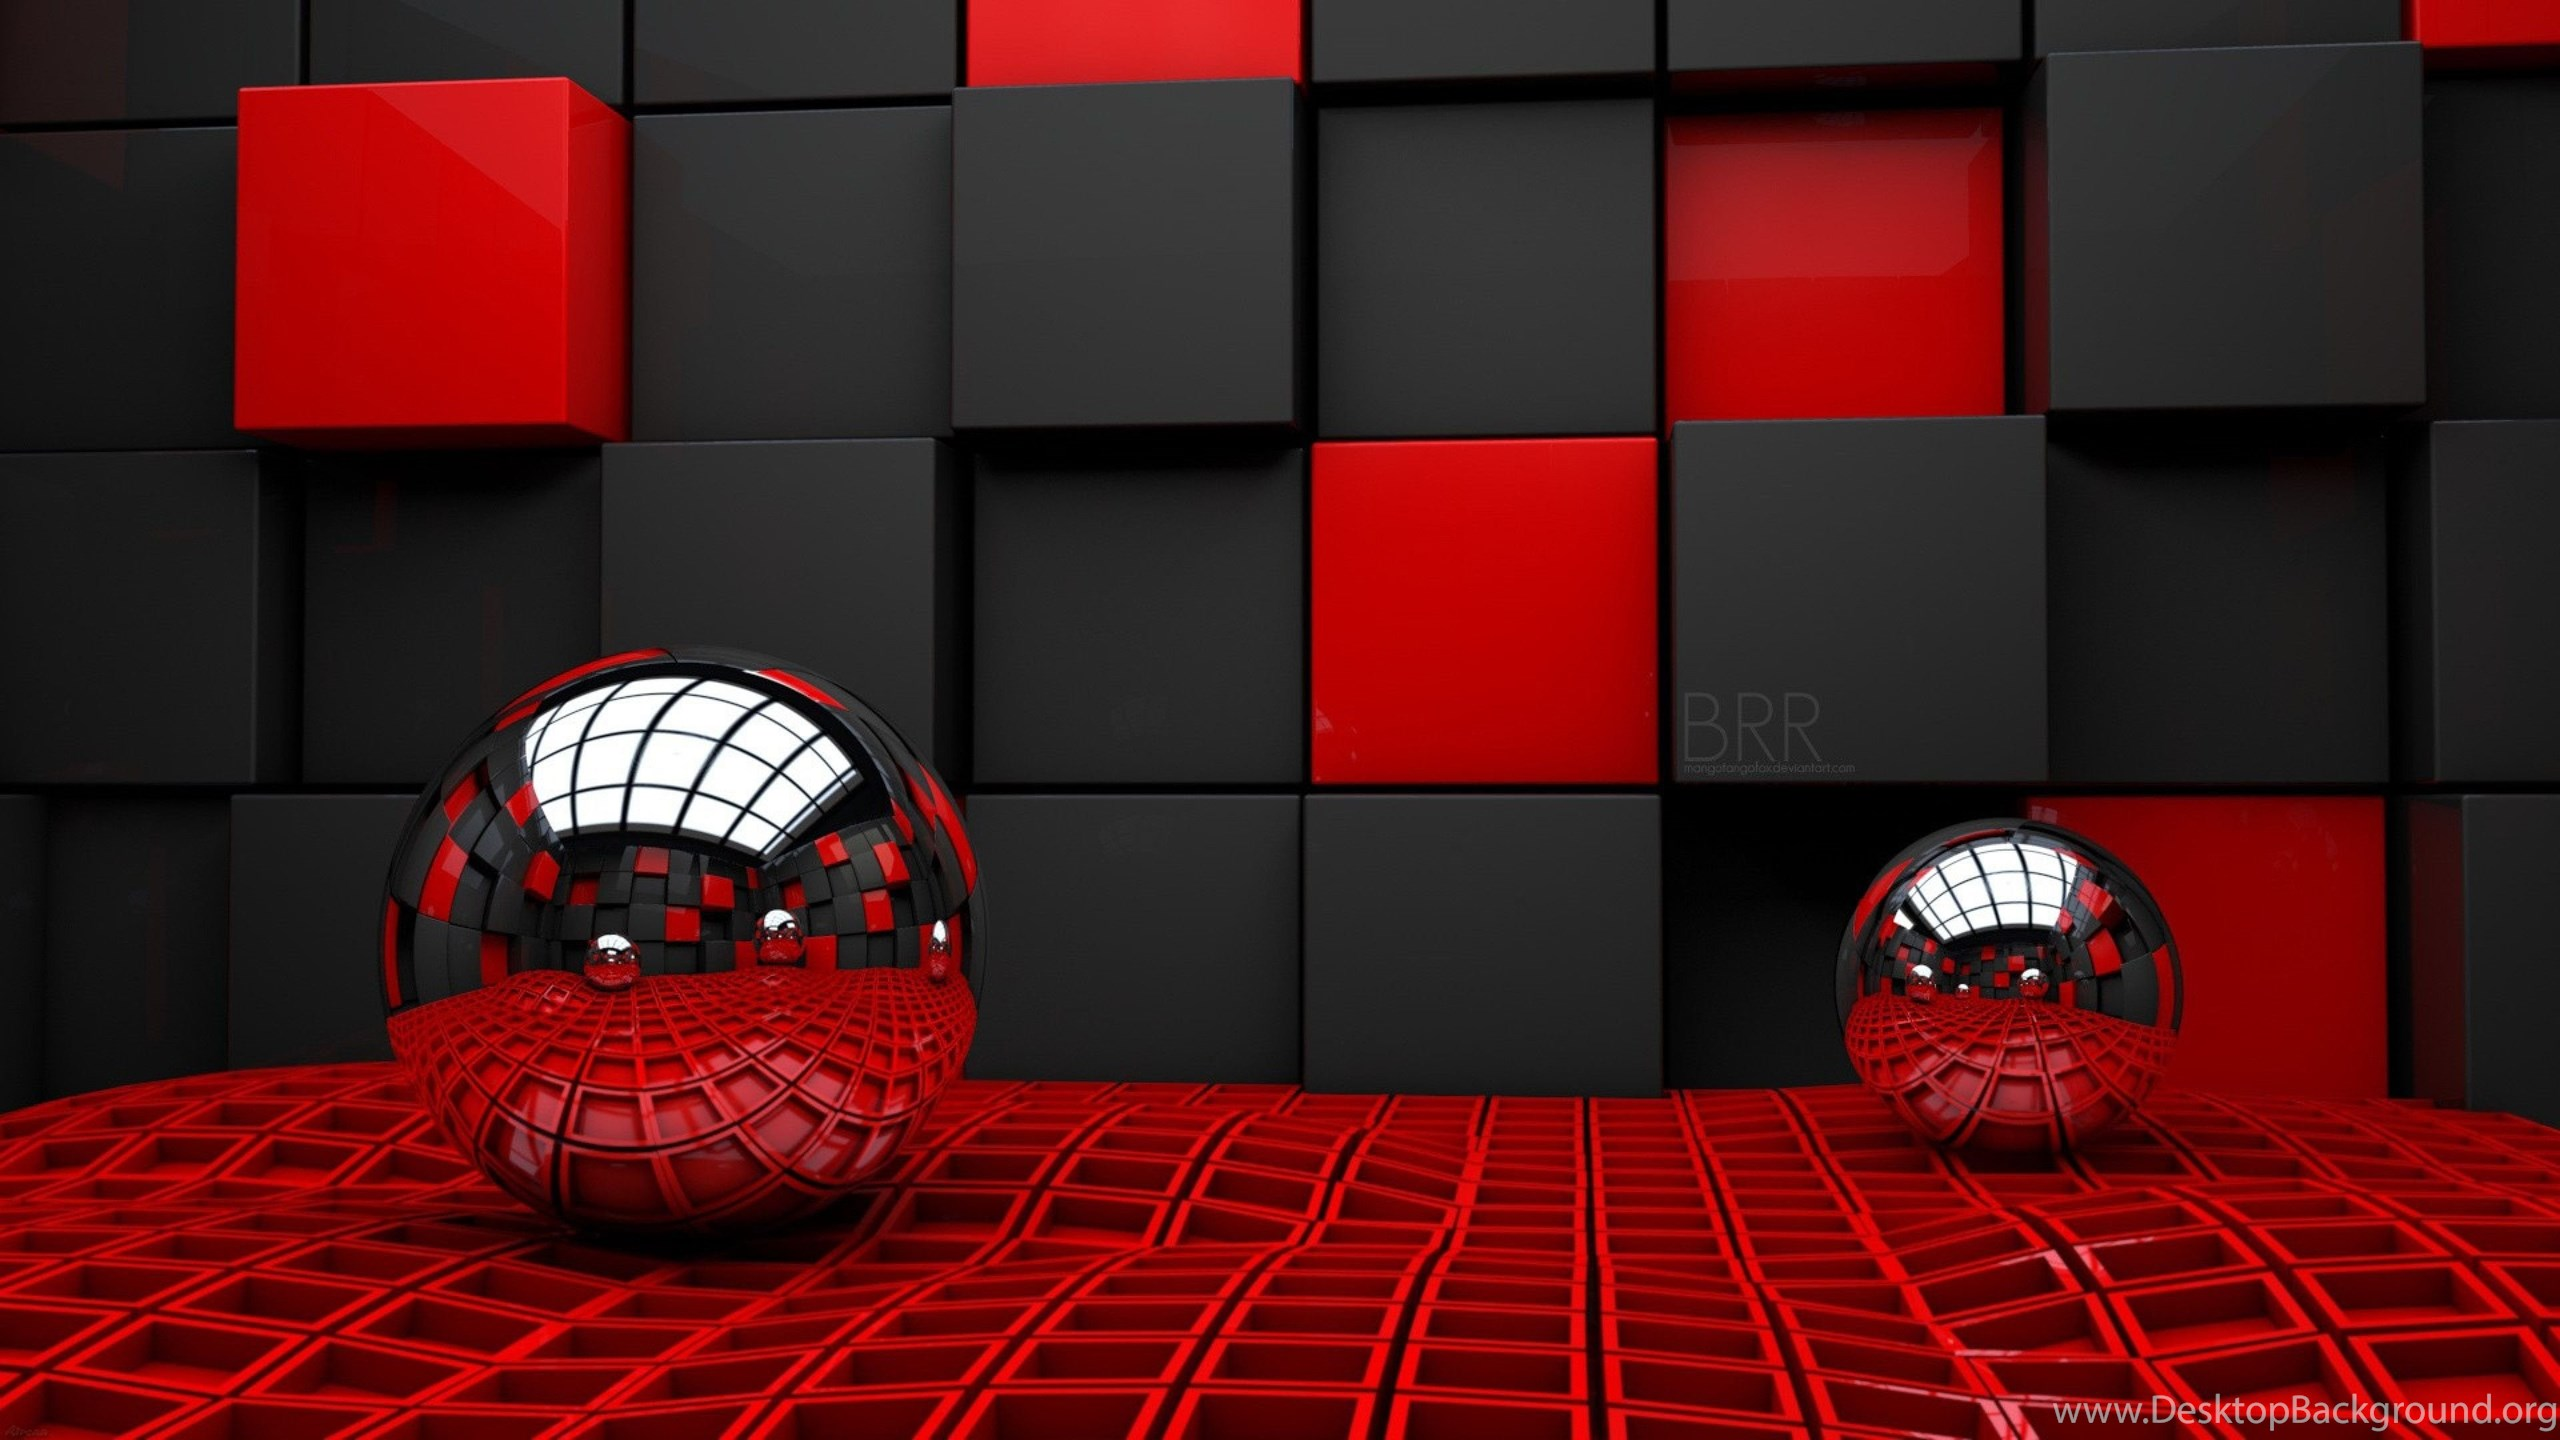 Glass Ball And Cubes 3d Wallpapers Hd Desktop Background